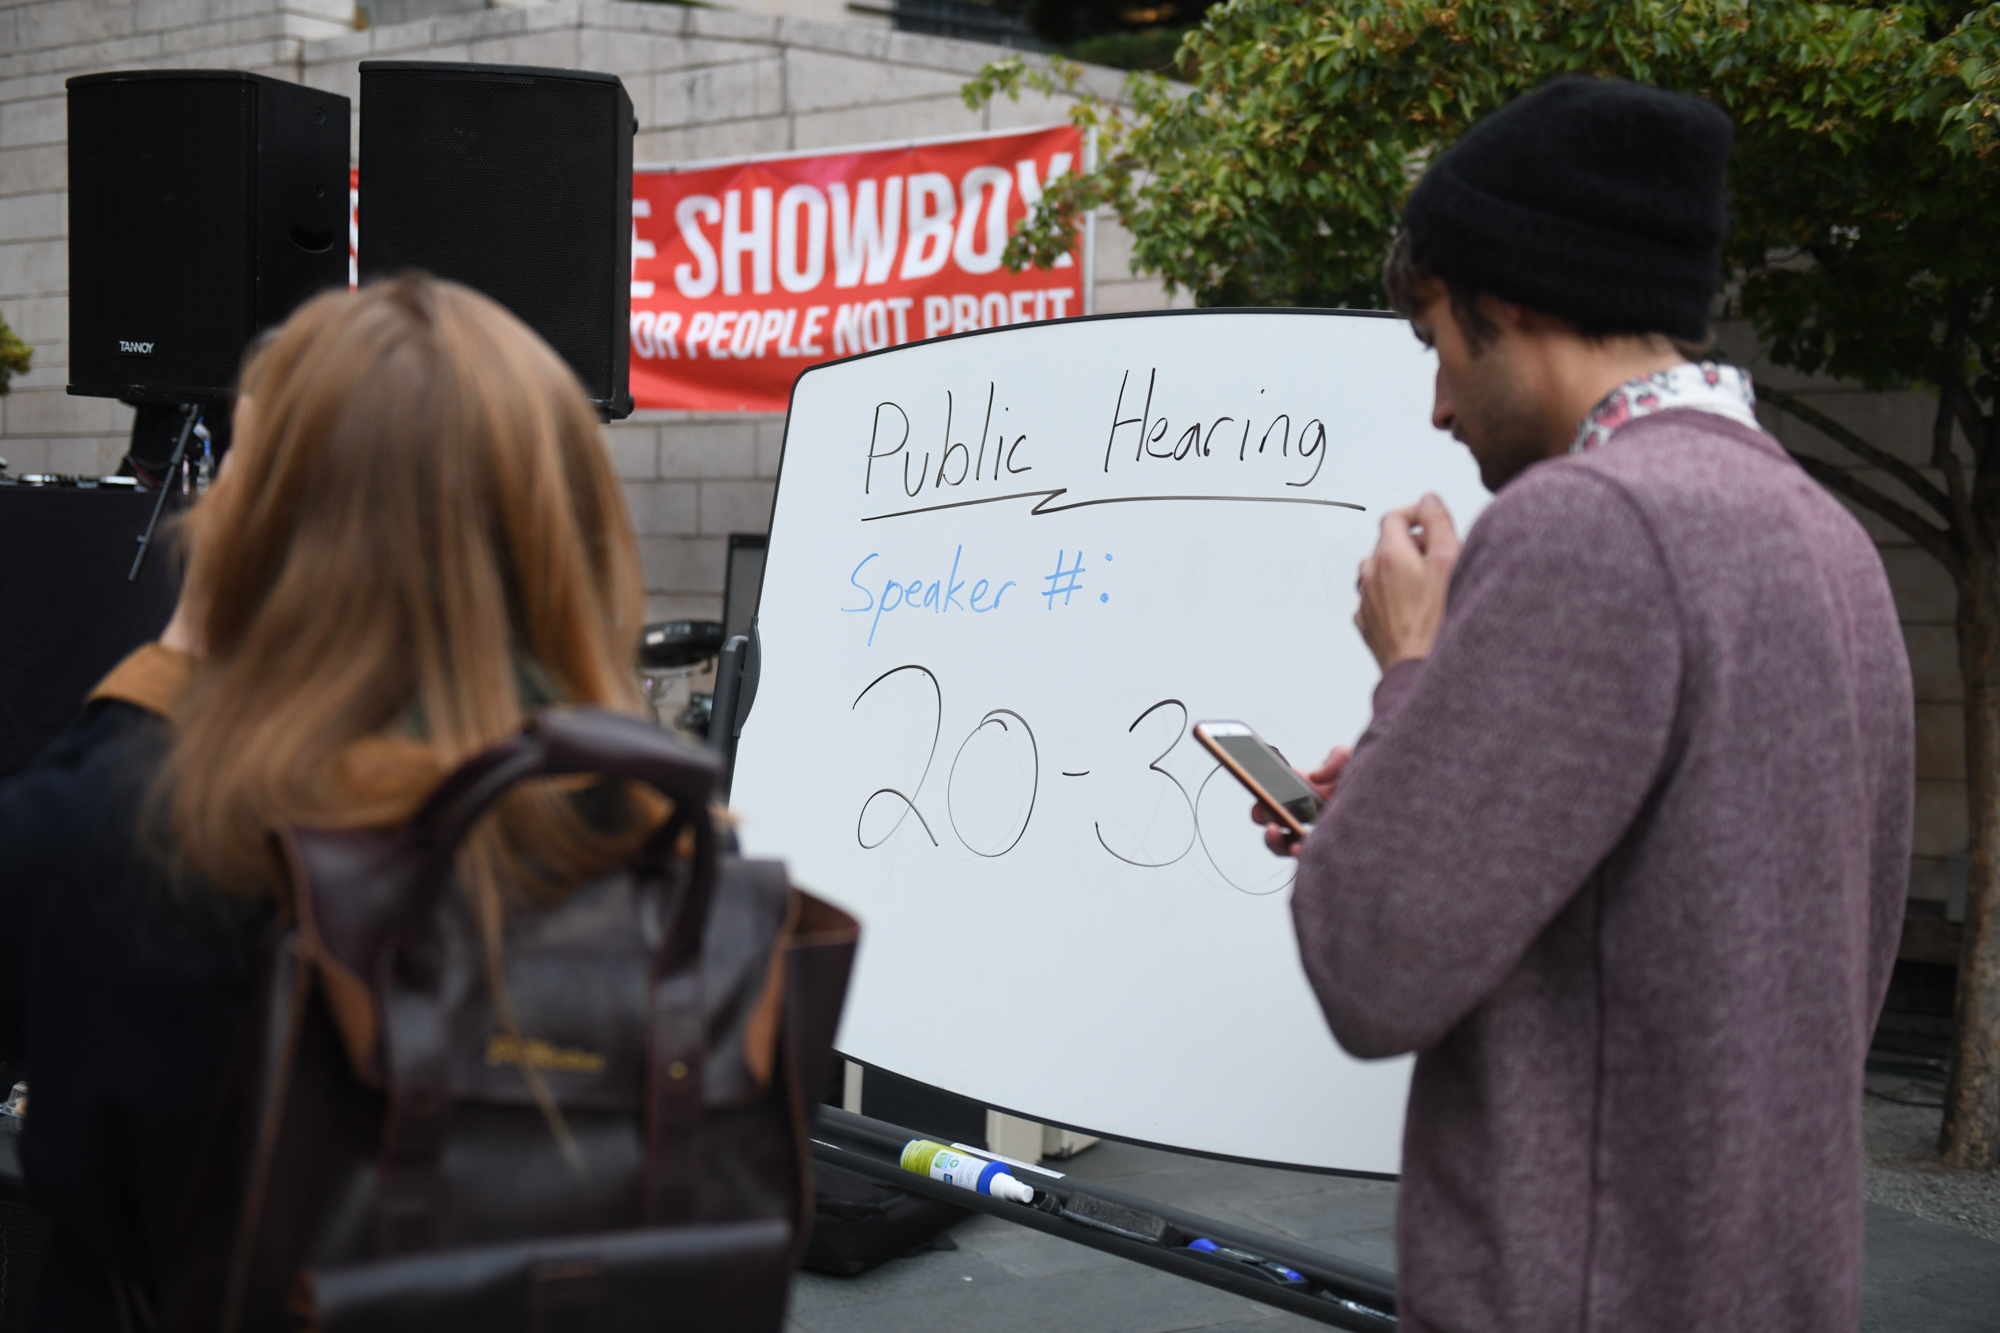 "Tonight (September 19, 2018) marked the first public hearing regarding The Showbox Seattle, an iconic venue that is facing demolition for a luxury high rise, despite public outcry. Before the meeting, a rally was held outside city hall where musicians, fans and members of the public gathered to ""Save the Showbox"" and support efforts to preserve the beloved space. A packed public hearing followed the free concert - no decisions expected out of this meeting, just city leaders getting feedback on whether to make a permanent extension of the Pike Place Historic District to include the Showbox. (Image: Chona Kasinger / Seattle Refined)"